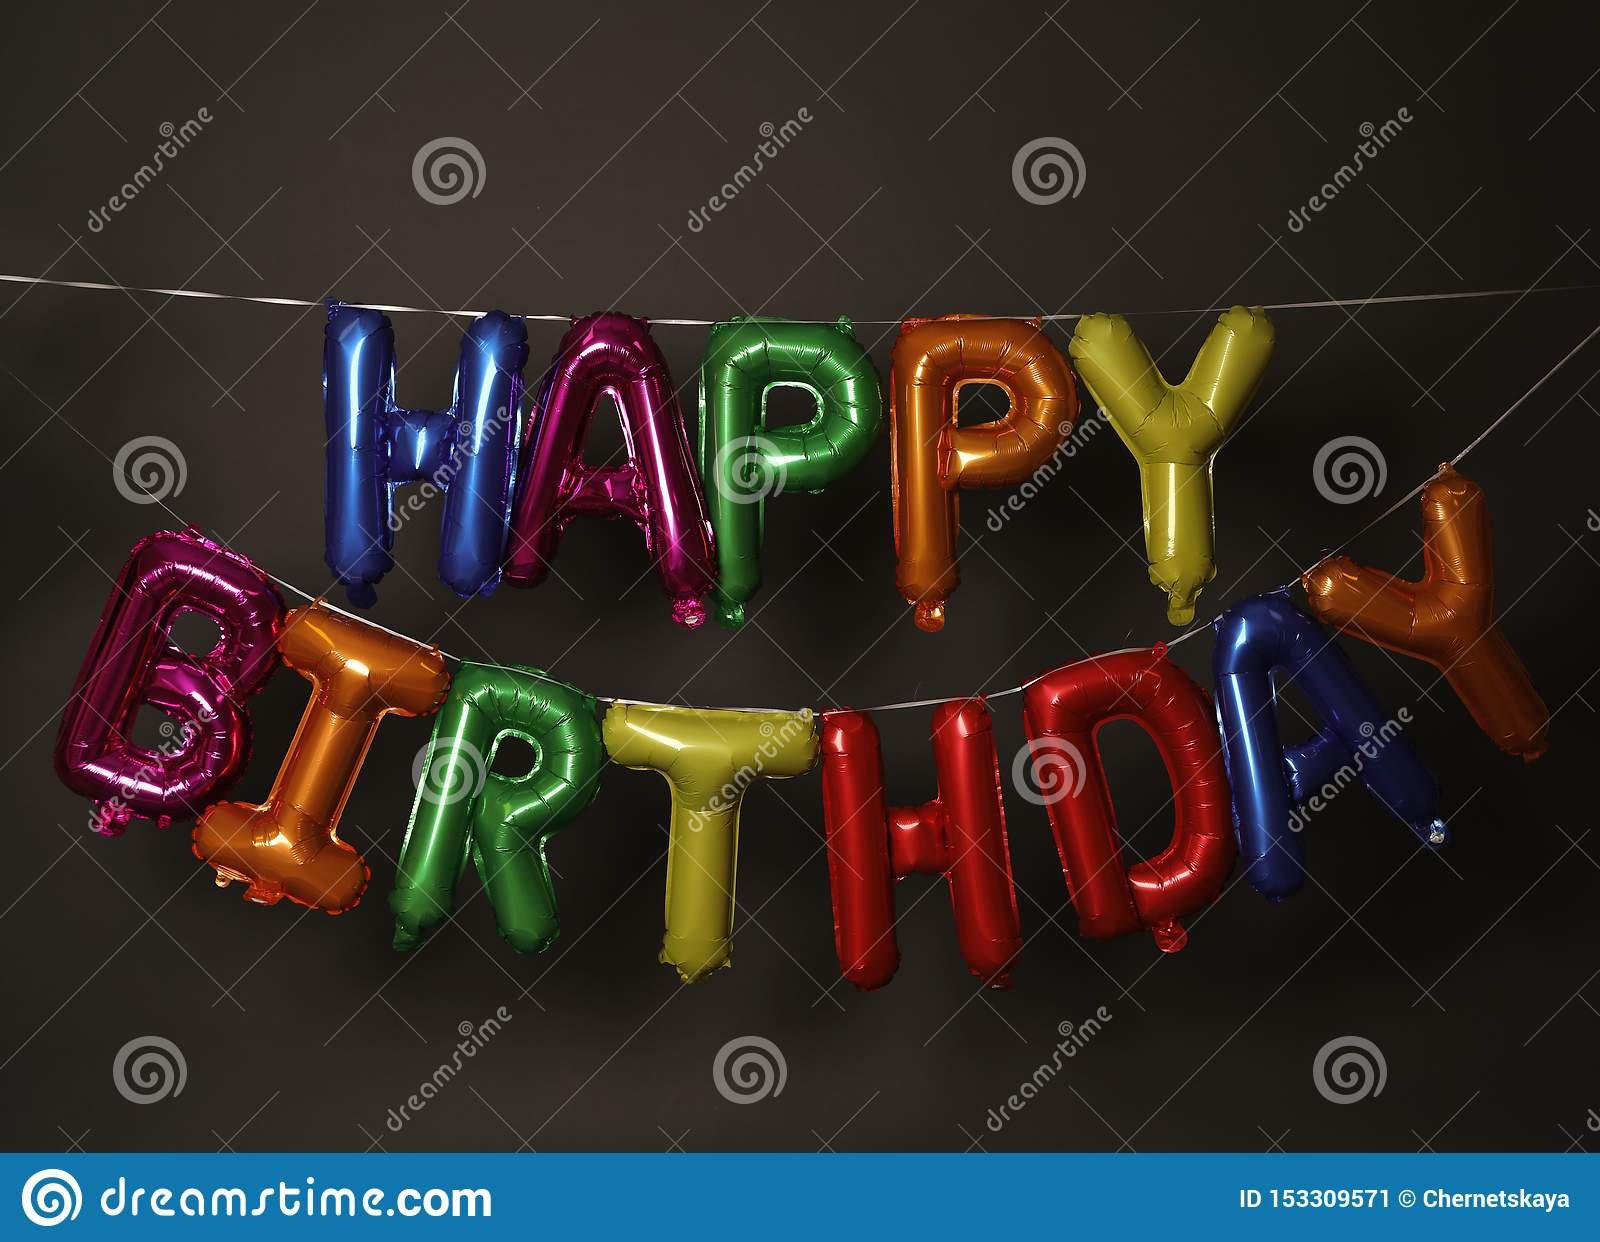 Phrase HAPPY BIRTHDAY made of colorful balloon letters